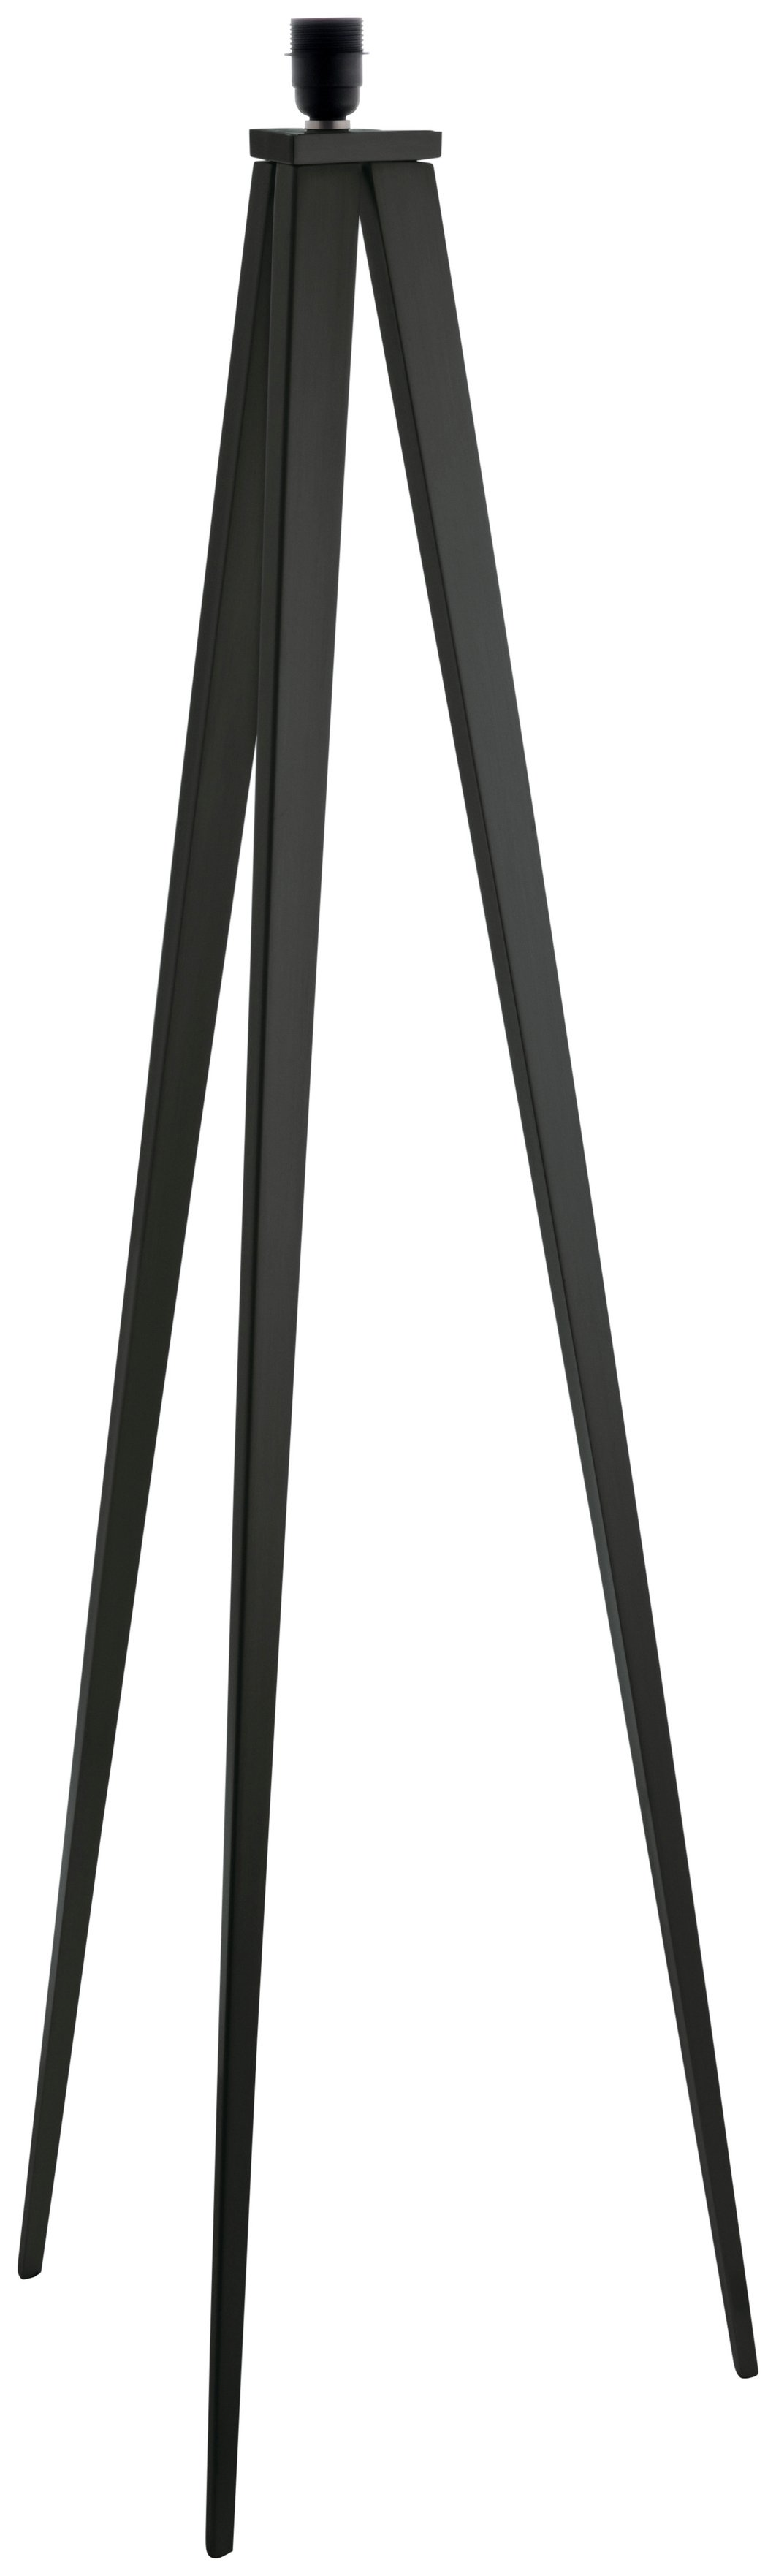 Habitat Yves Metal Tripod Floor Lamp - Black